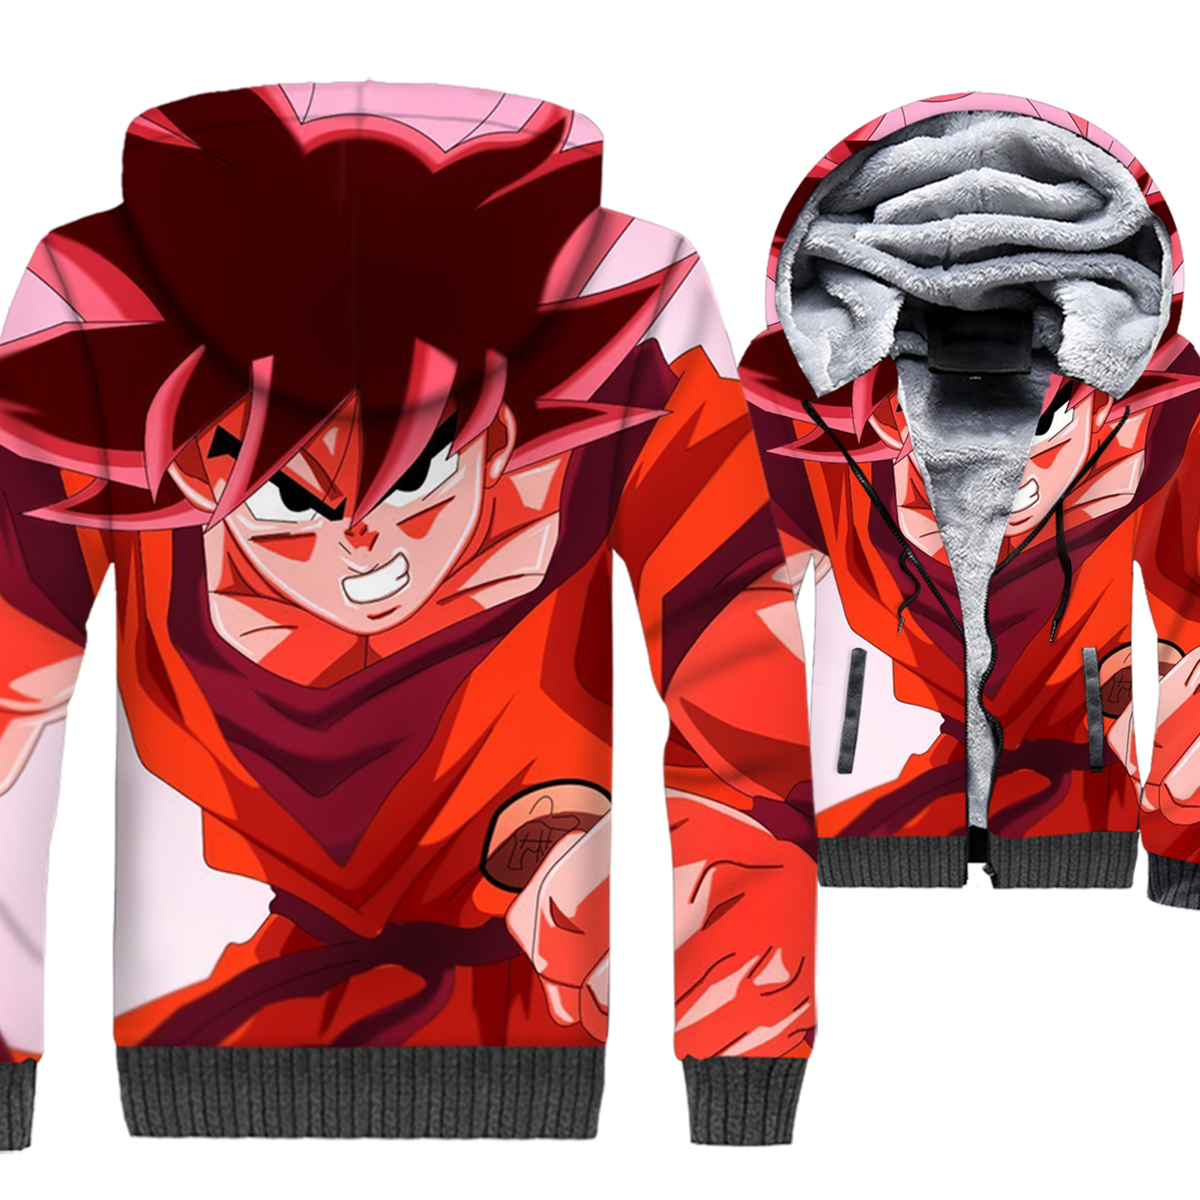 Anime Dragon Ball Gohan 3D Hoodies Men Super Saiyan Sweatshirts Winter Thick Fleece Warm Coat Vegeta Jackets Harajuku Steetwear